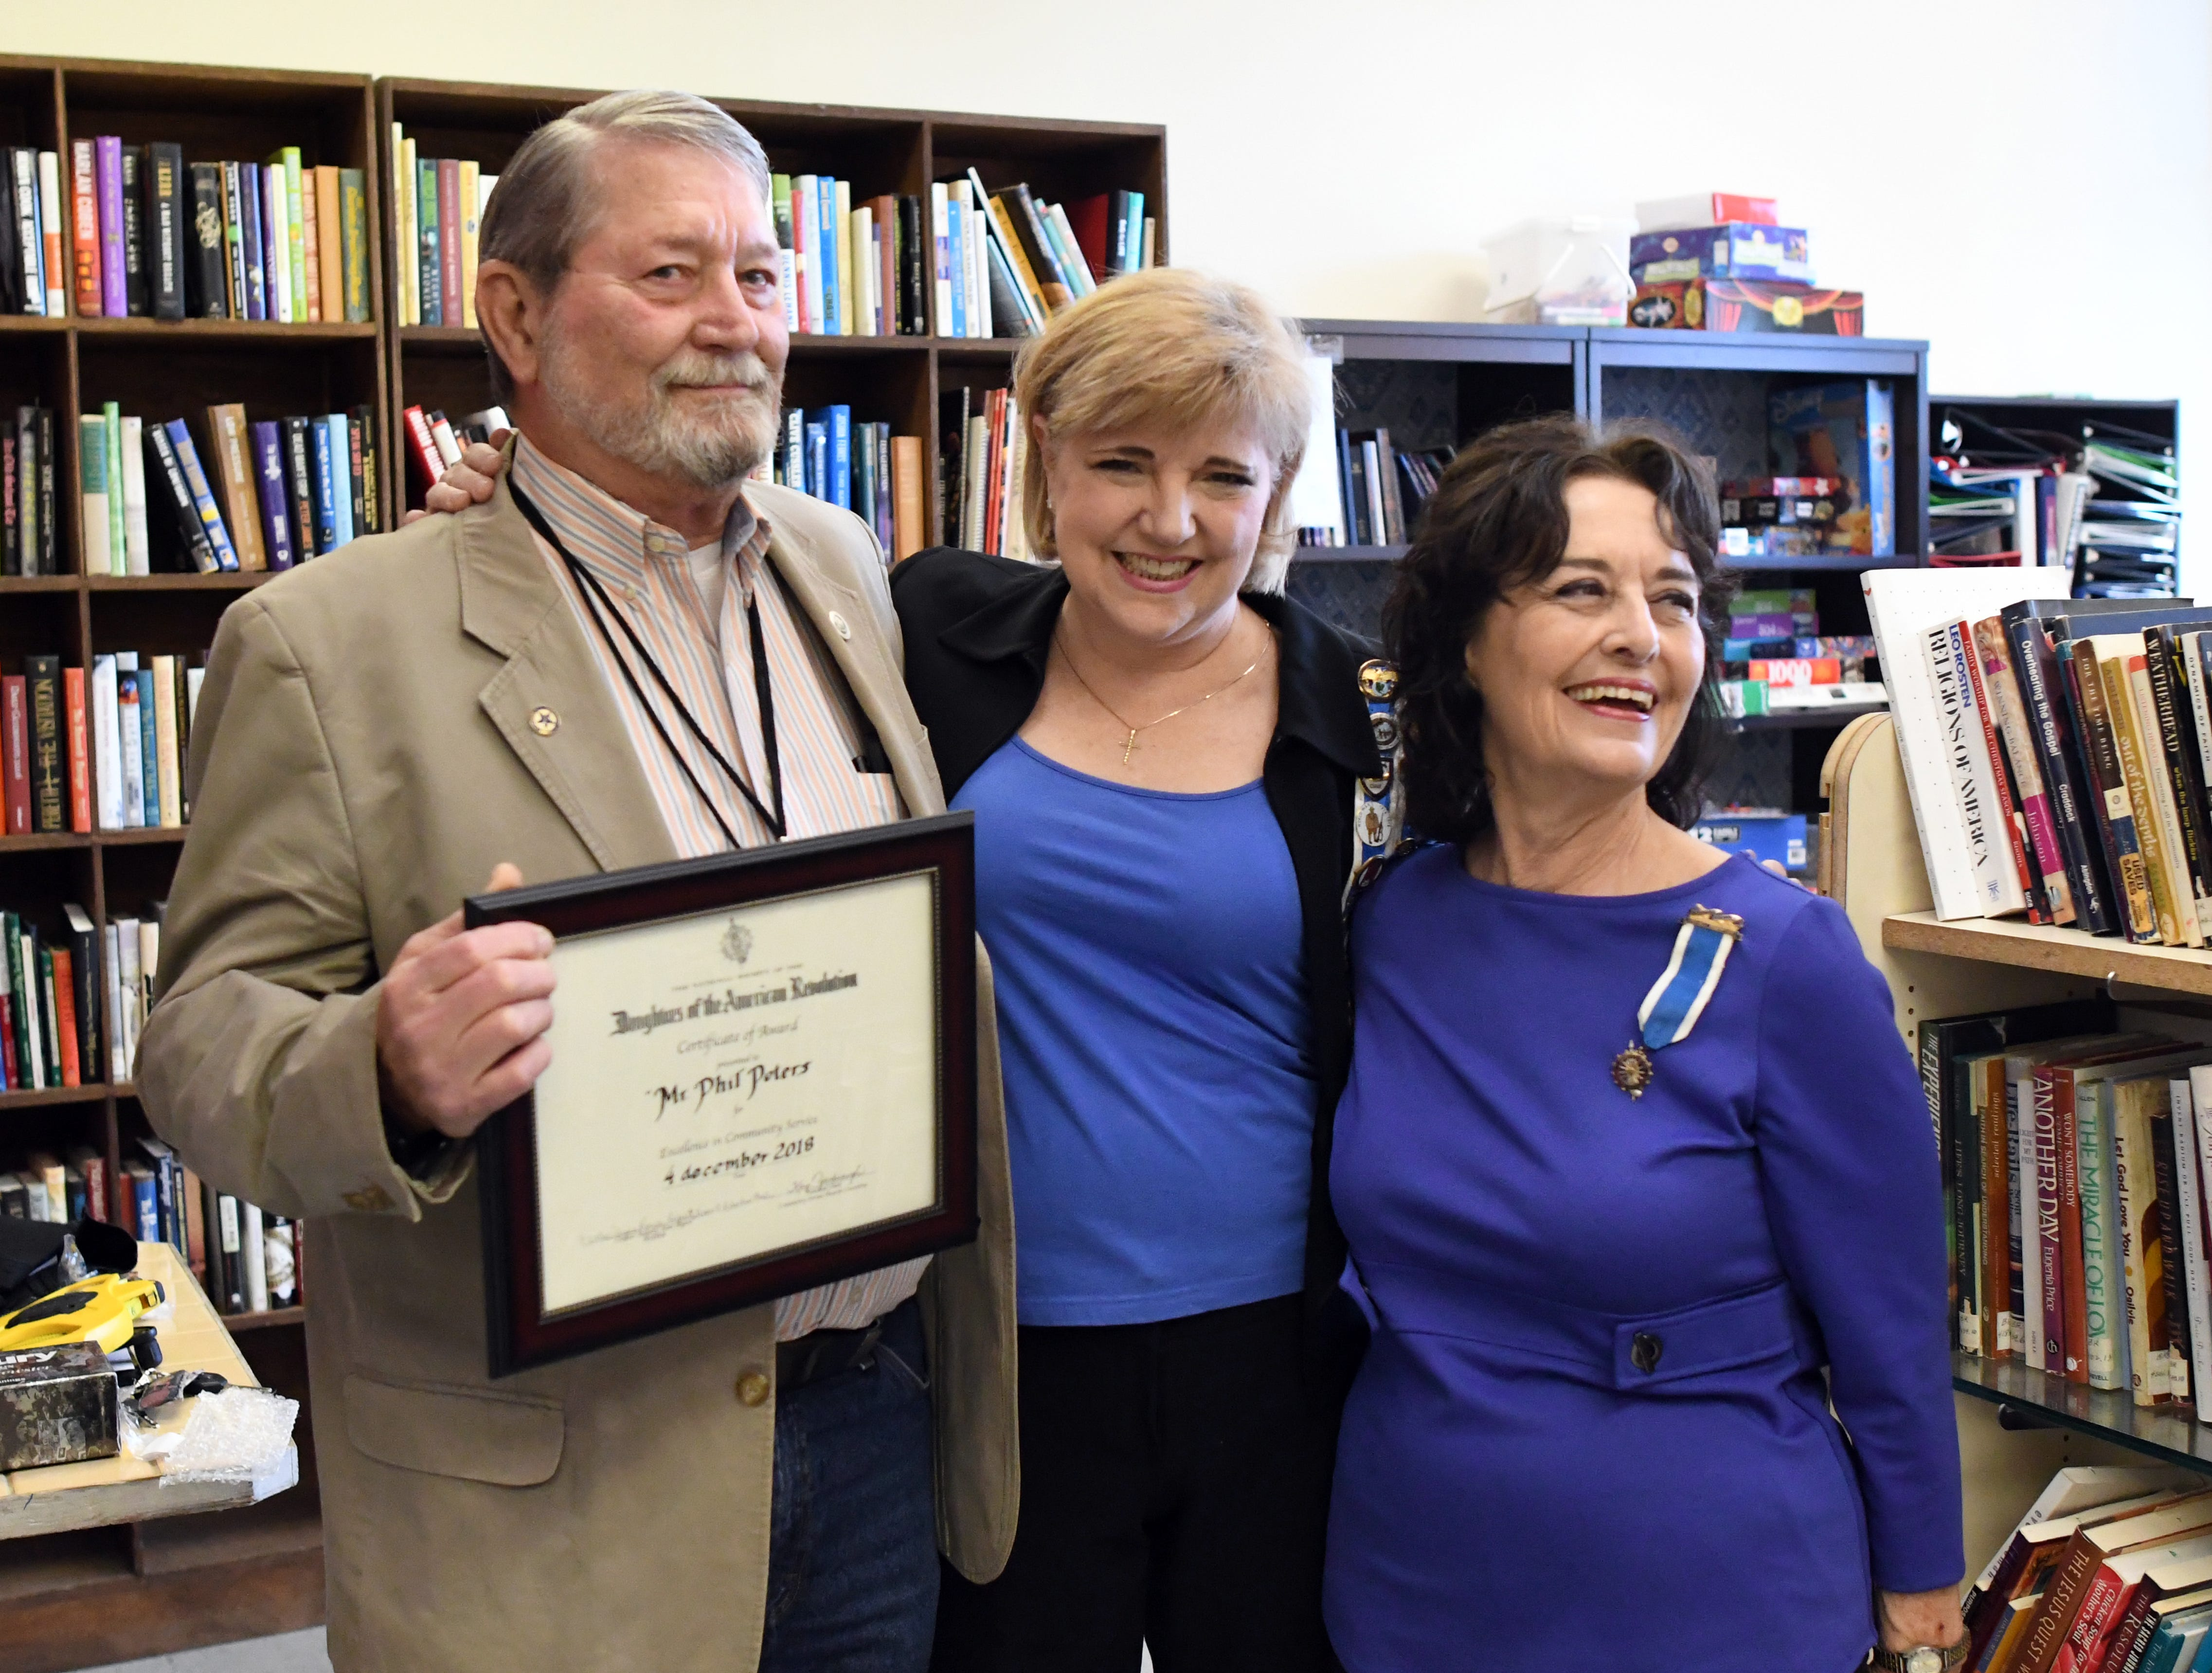 Daughters of the American Revolution members Rebekah Ray, middle, and Lynn Royse, right, surprise Phillip Peters with the community service award for his volunteering with Edward Street Fellowship Thrift Store on Tuesday, December 4, 2018. Peters has been volunteering with the store since 2002.